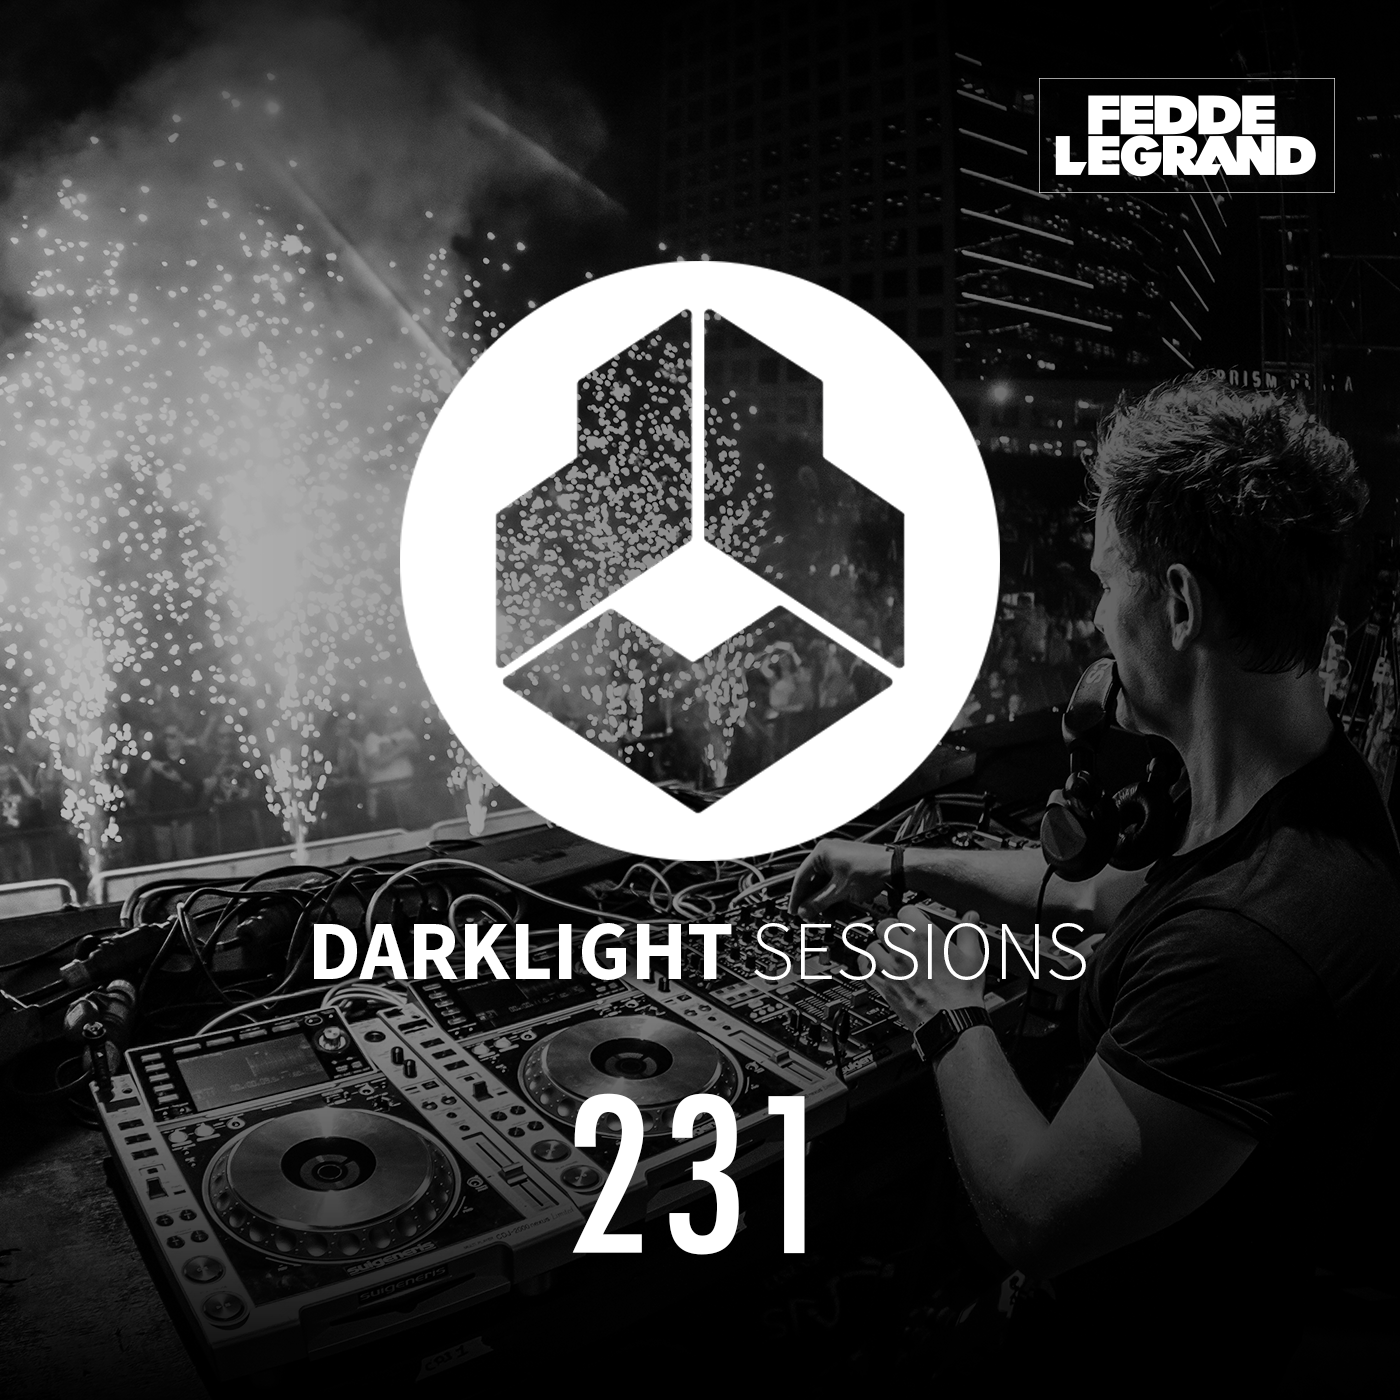 Darklight Sessions 231